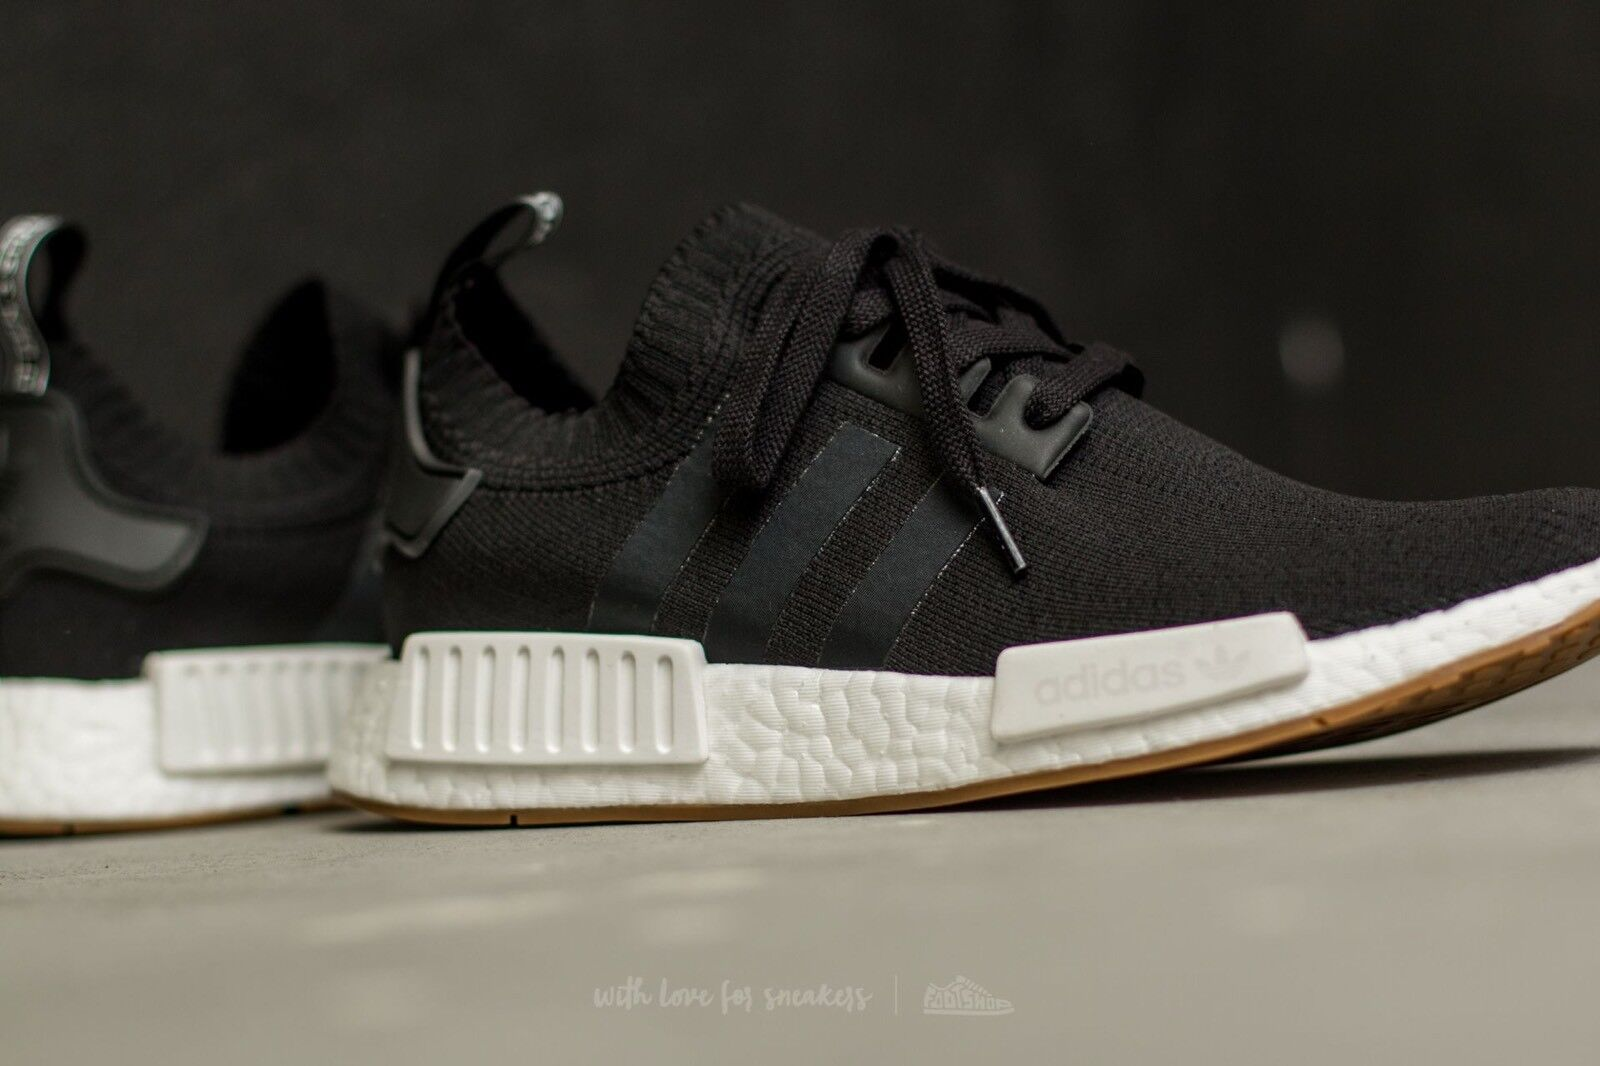 Adidas nmd r1 primeknit pk gomma pack nero nucleo bianco nero pack impulso ultra by1887 Uomo 7,5 374f1a